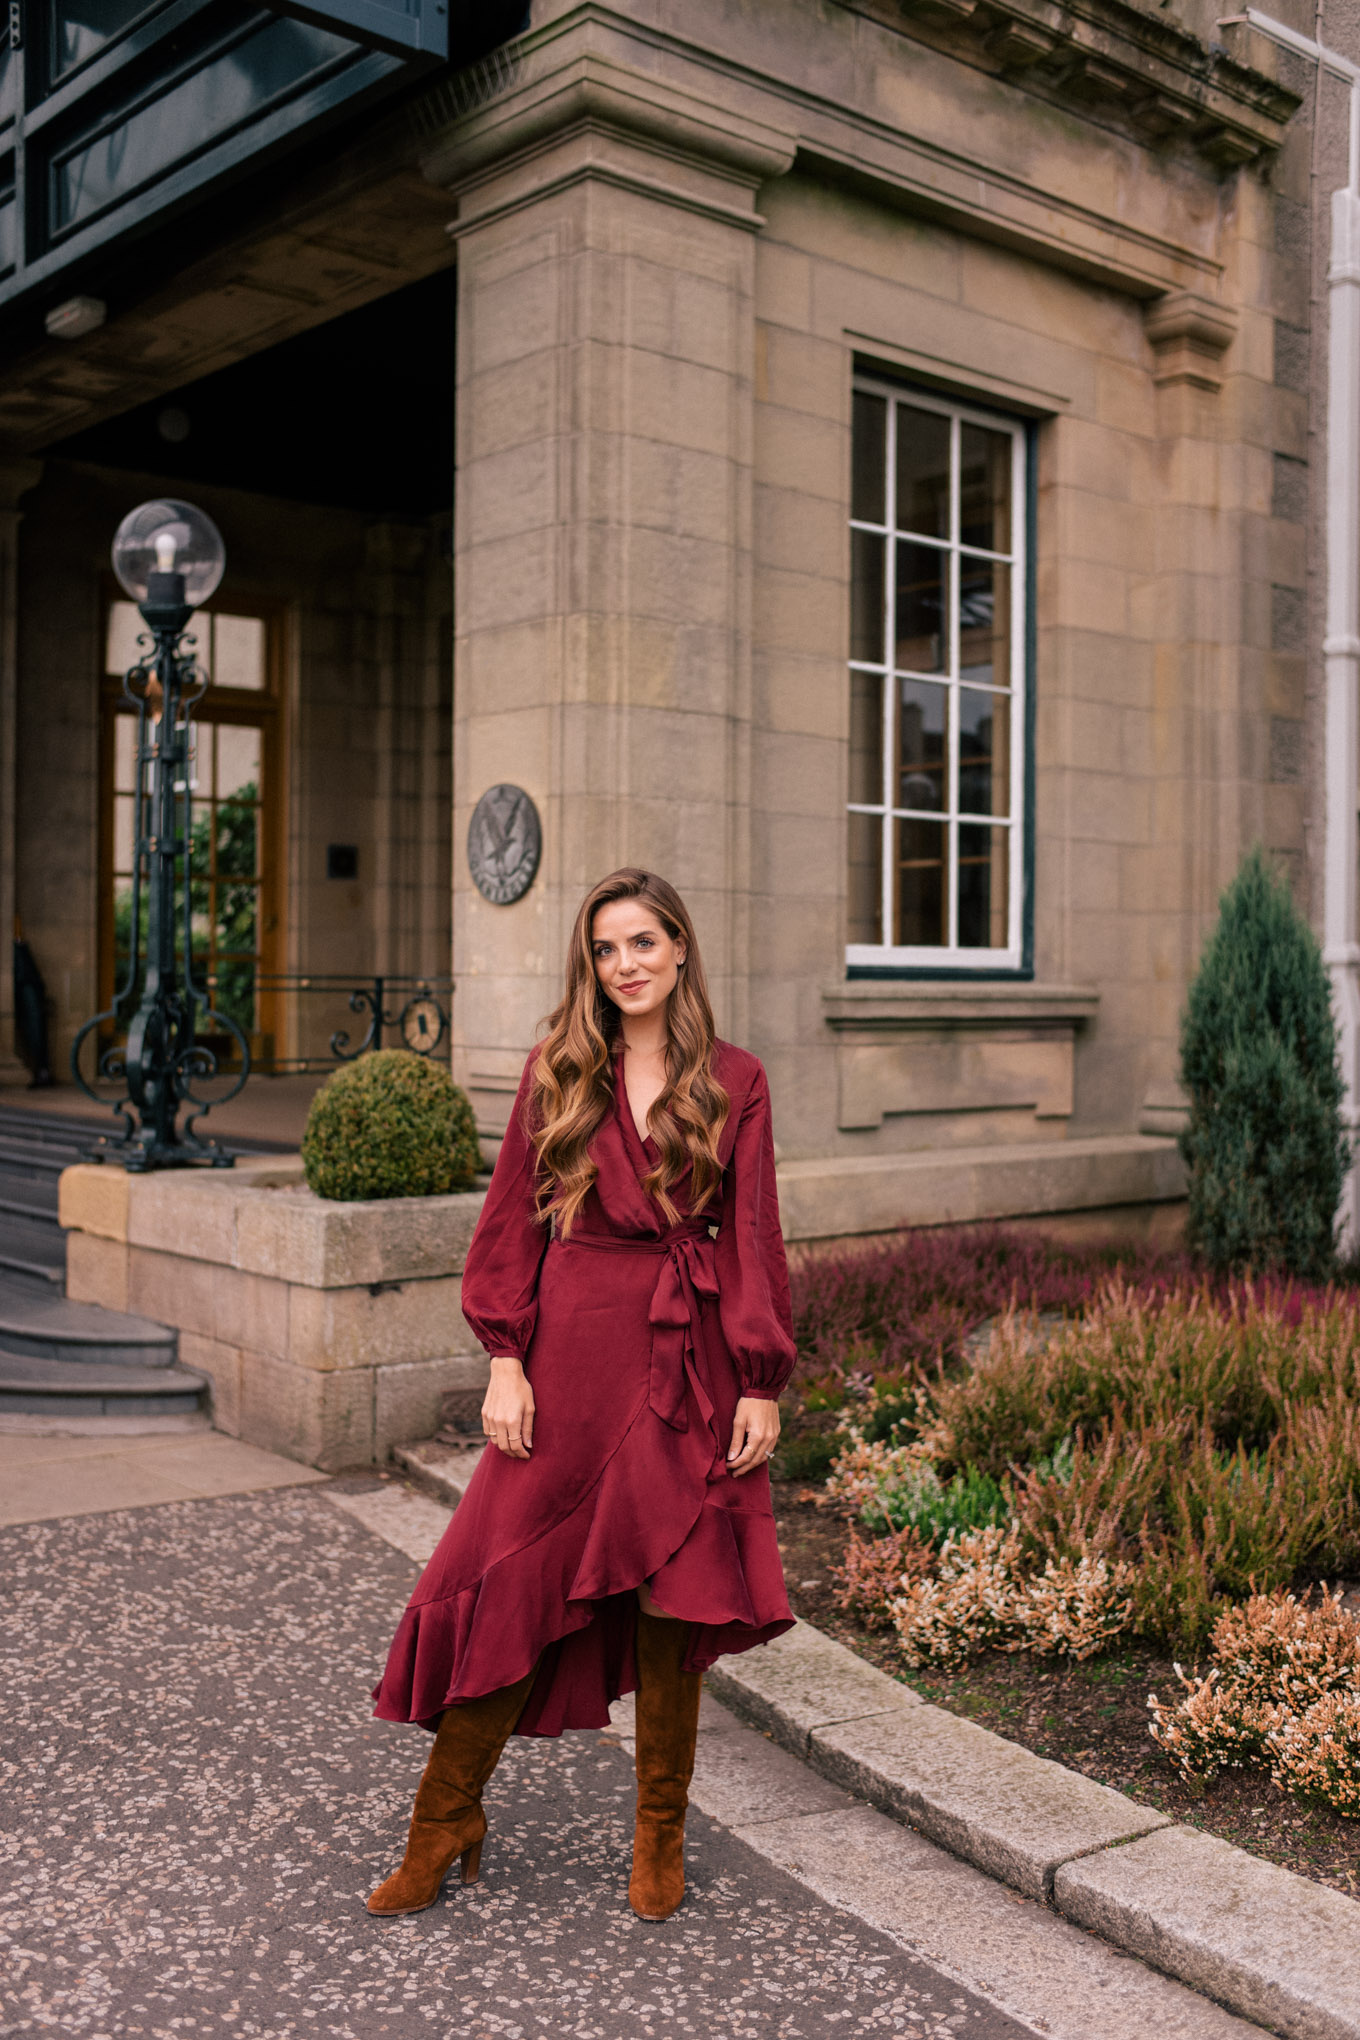 gmg-scotland-fall-trip- gleneagles-1006011